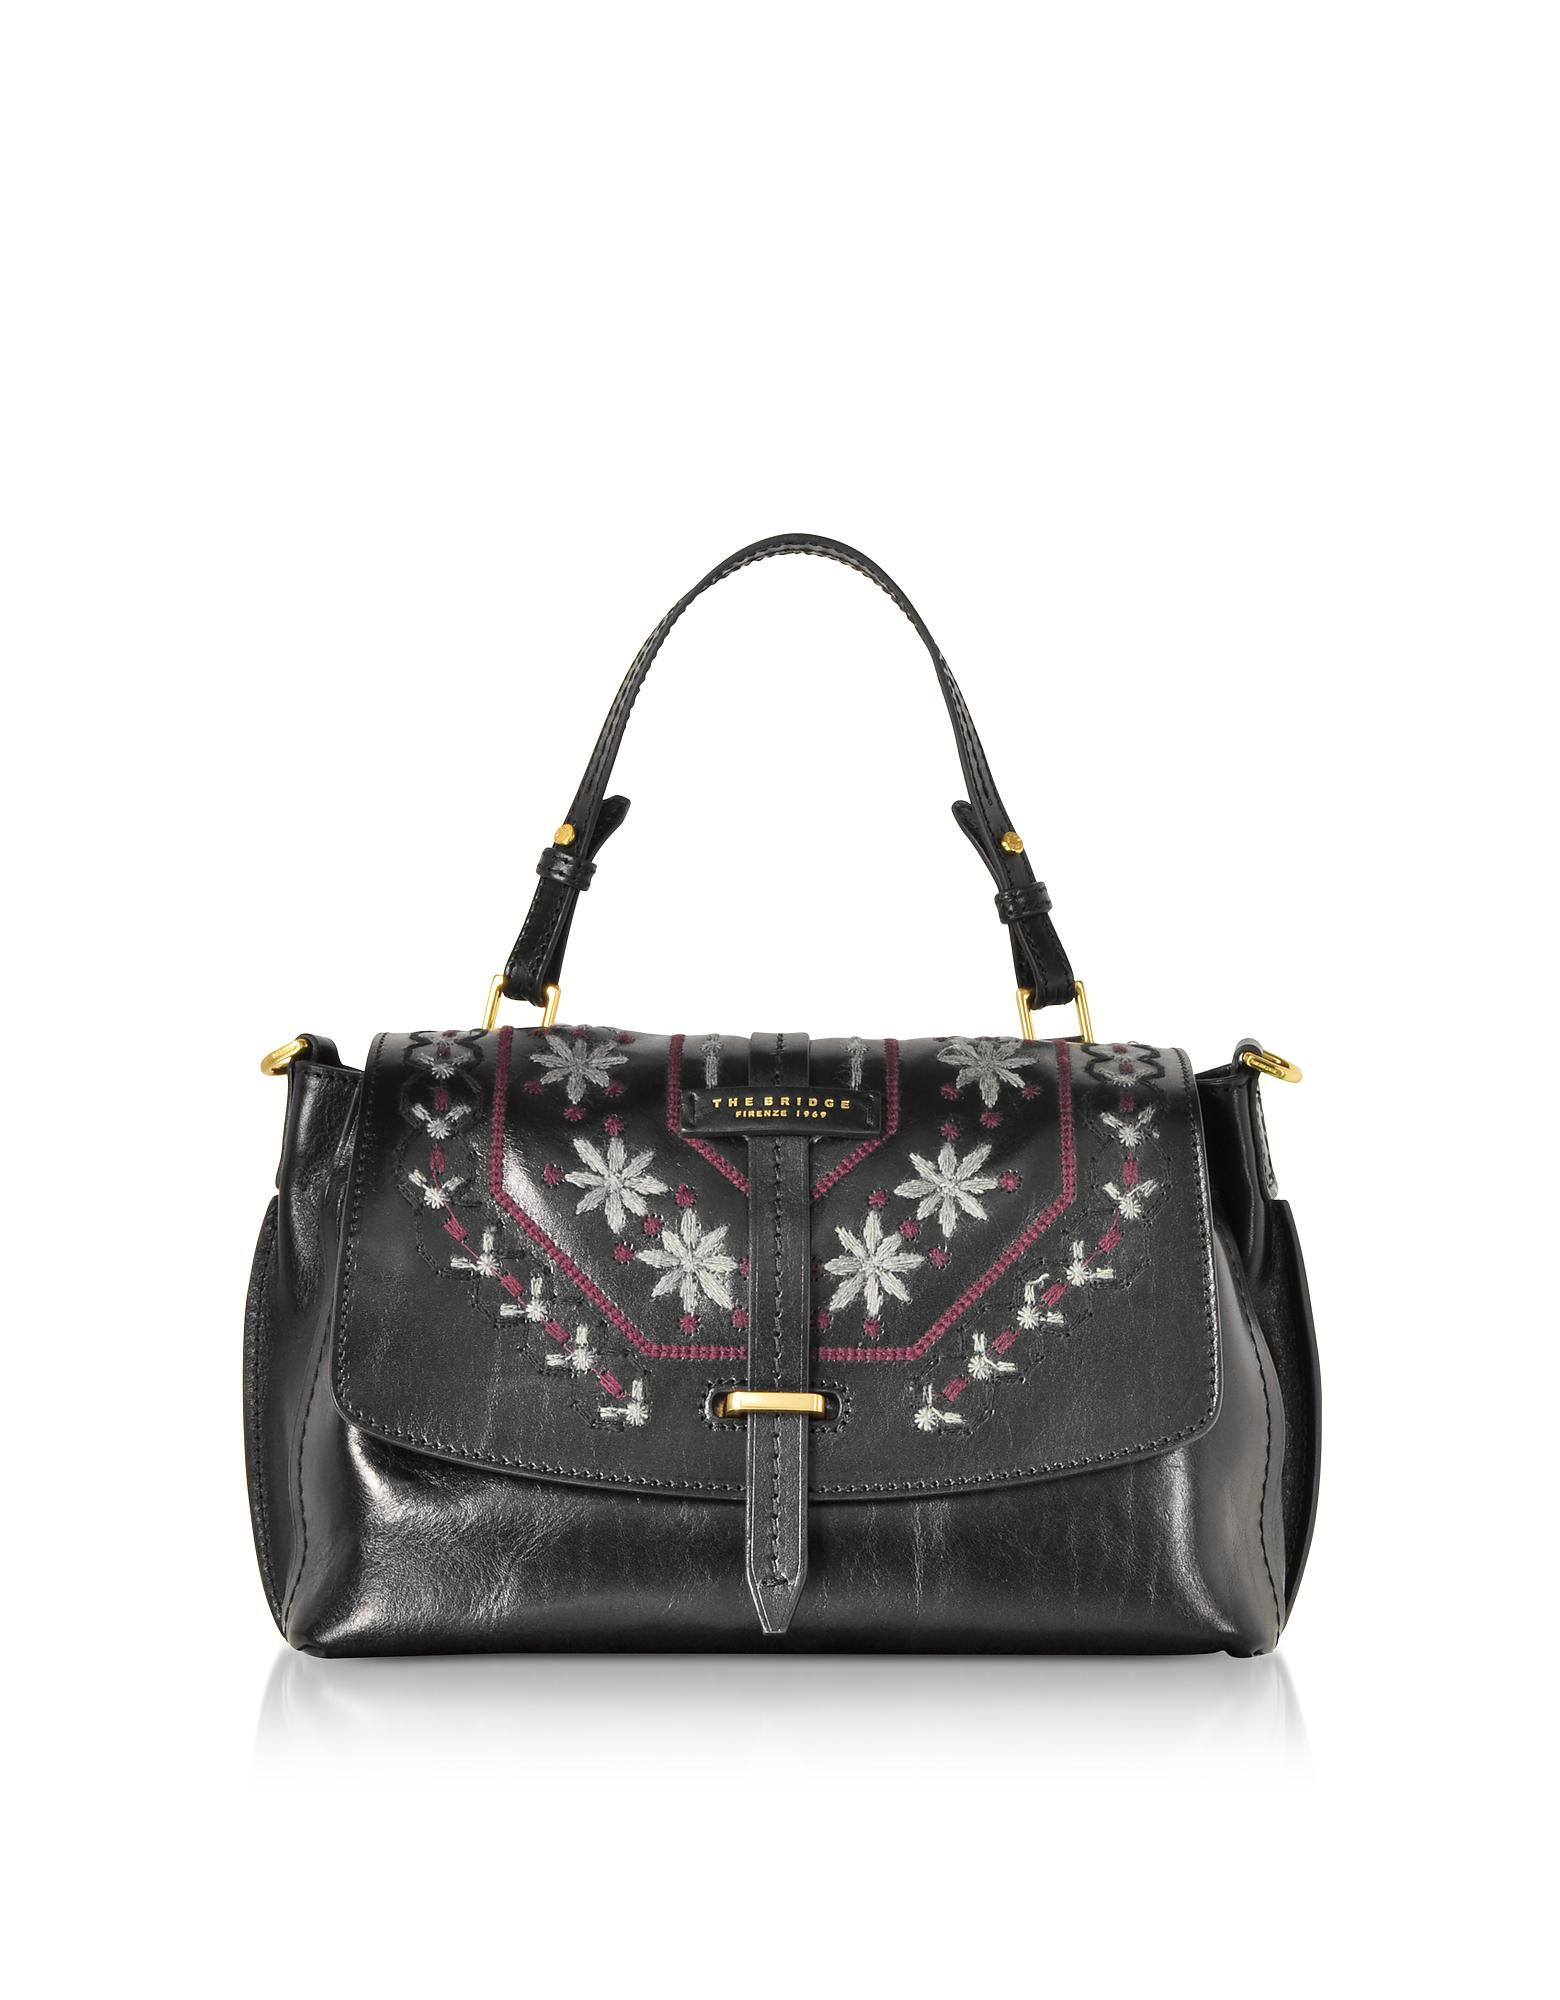 The Bridge Women S Black Fiesole Embroidered Leather Satchel Bag